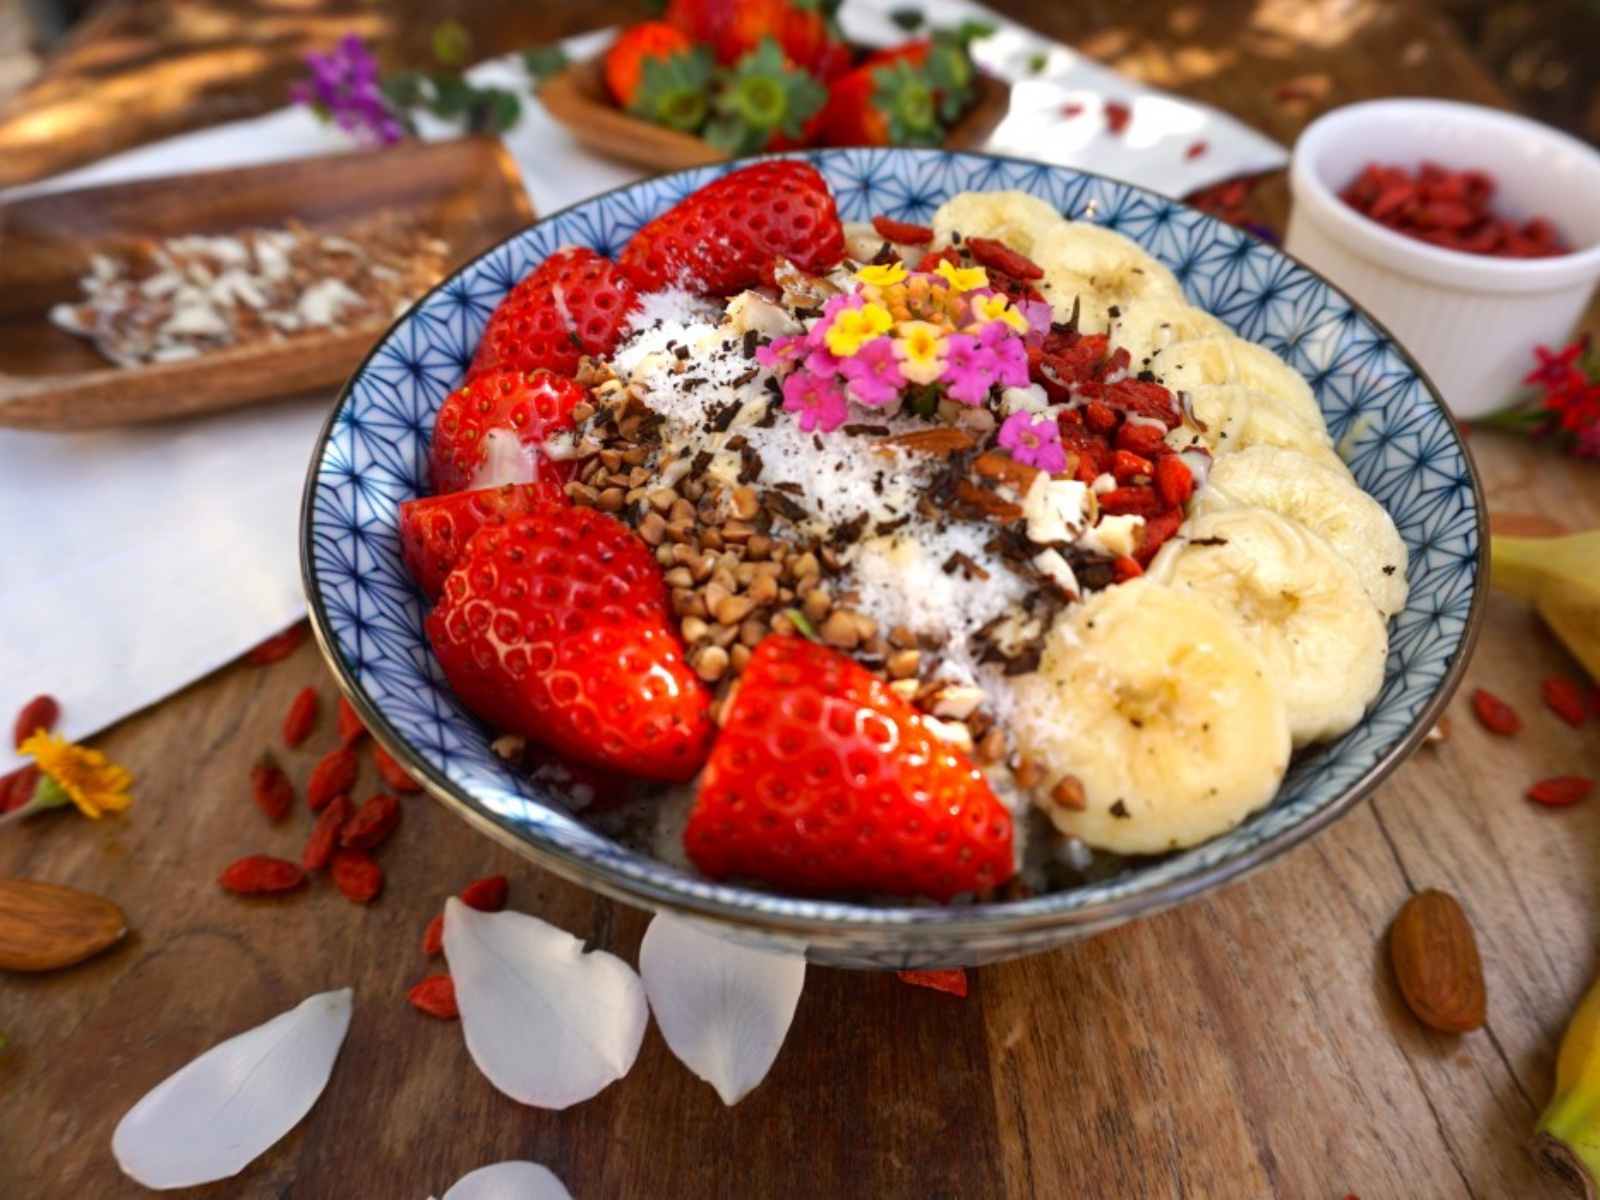 Sweet, filling vegan strawberry banana oatmeal